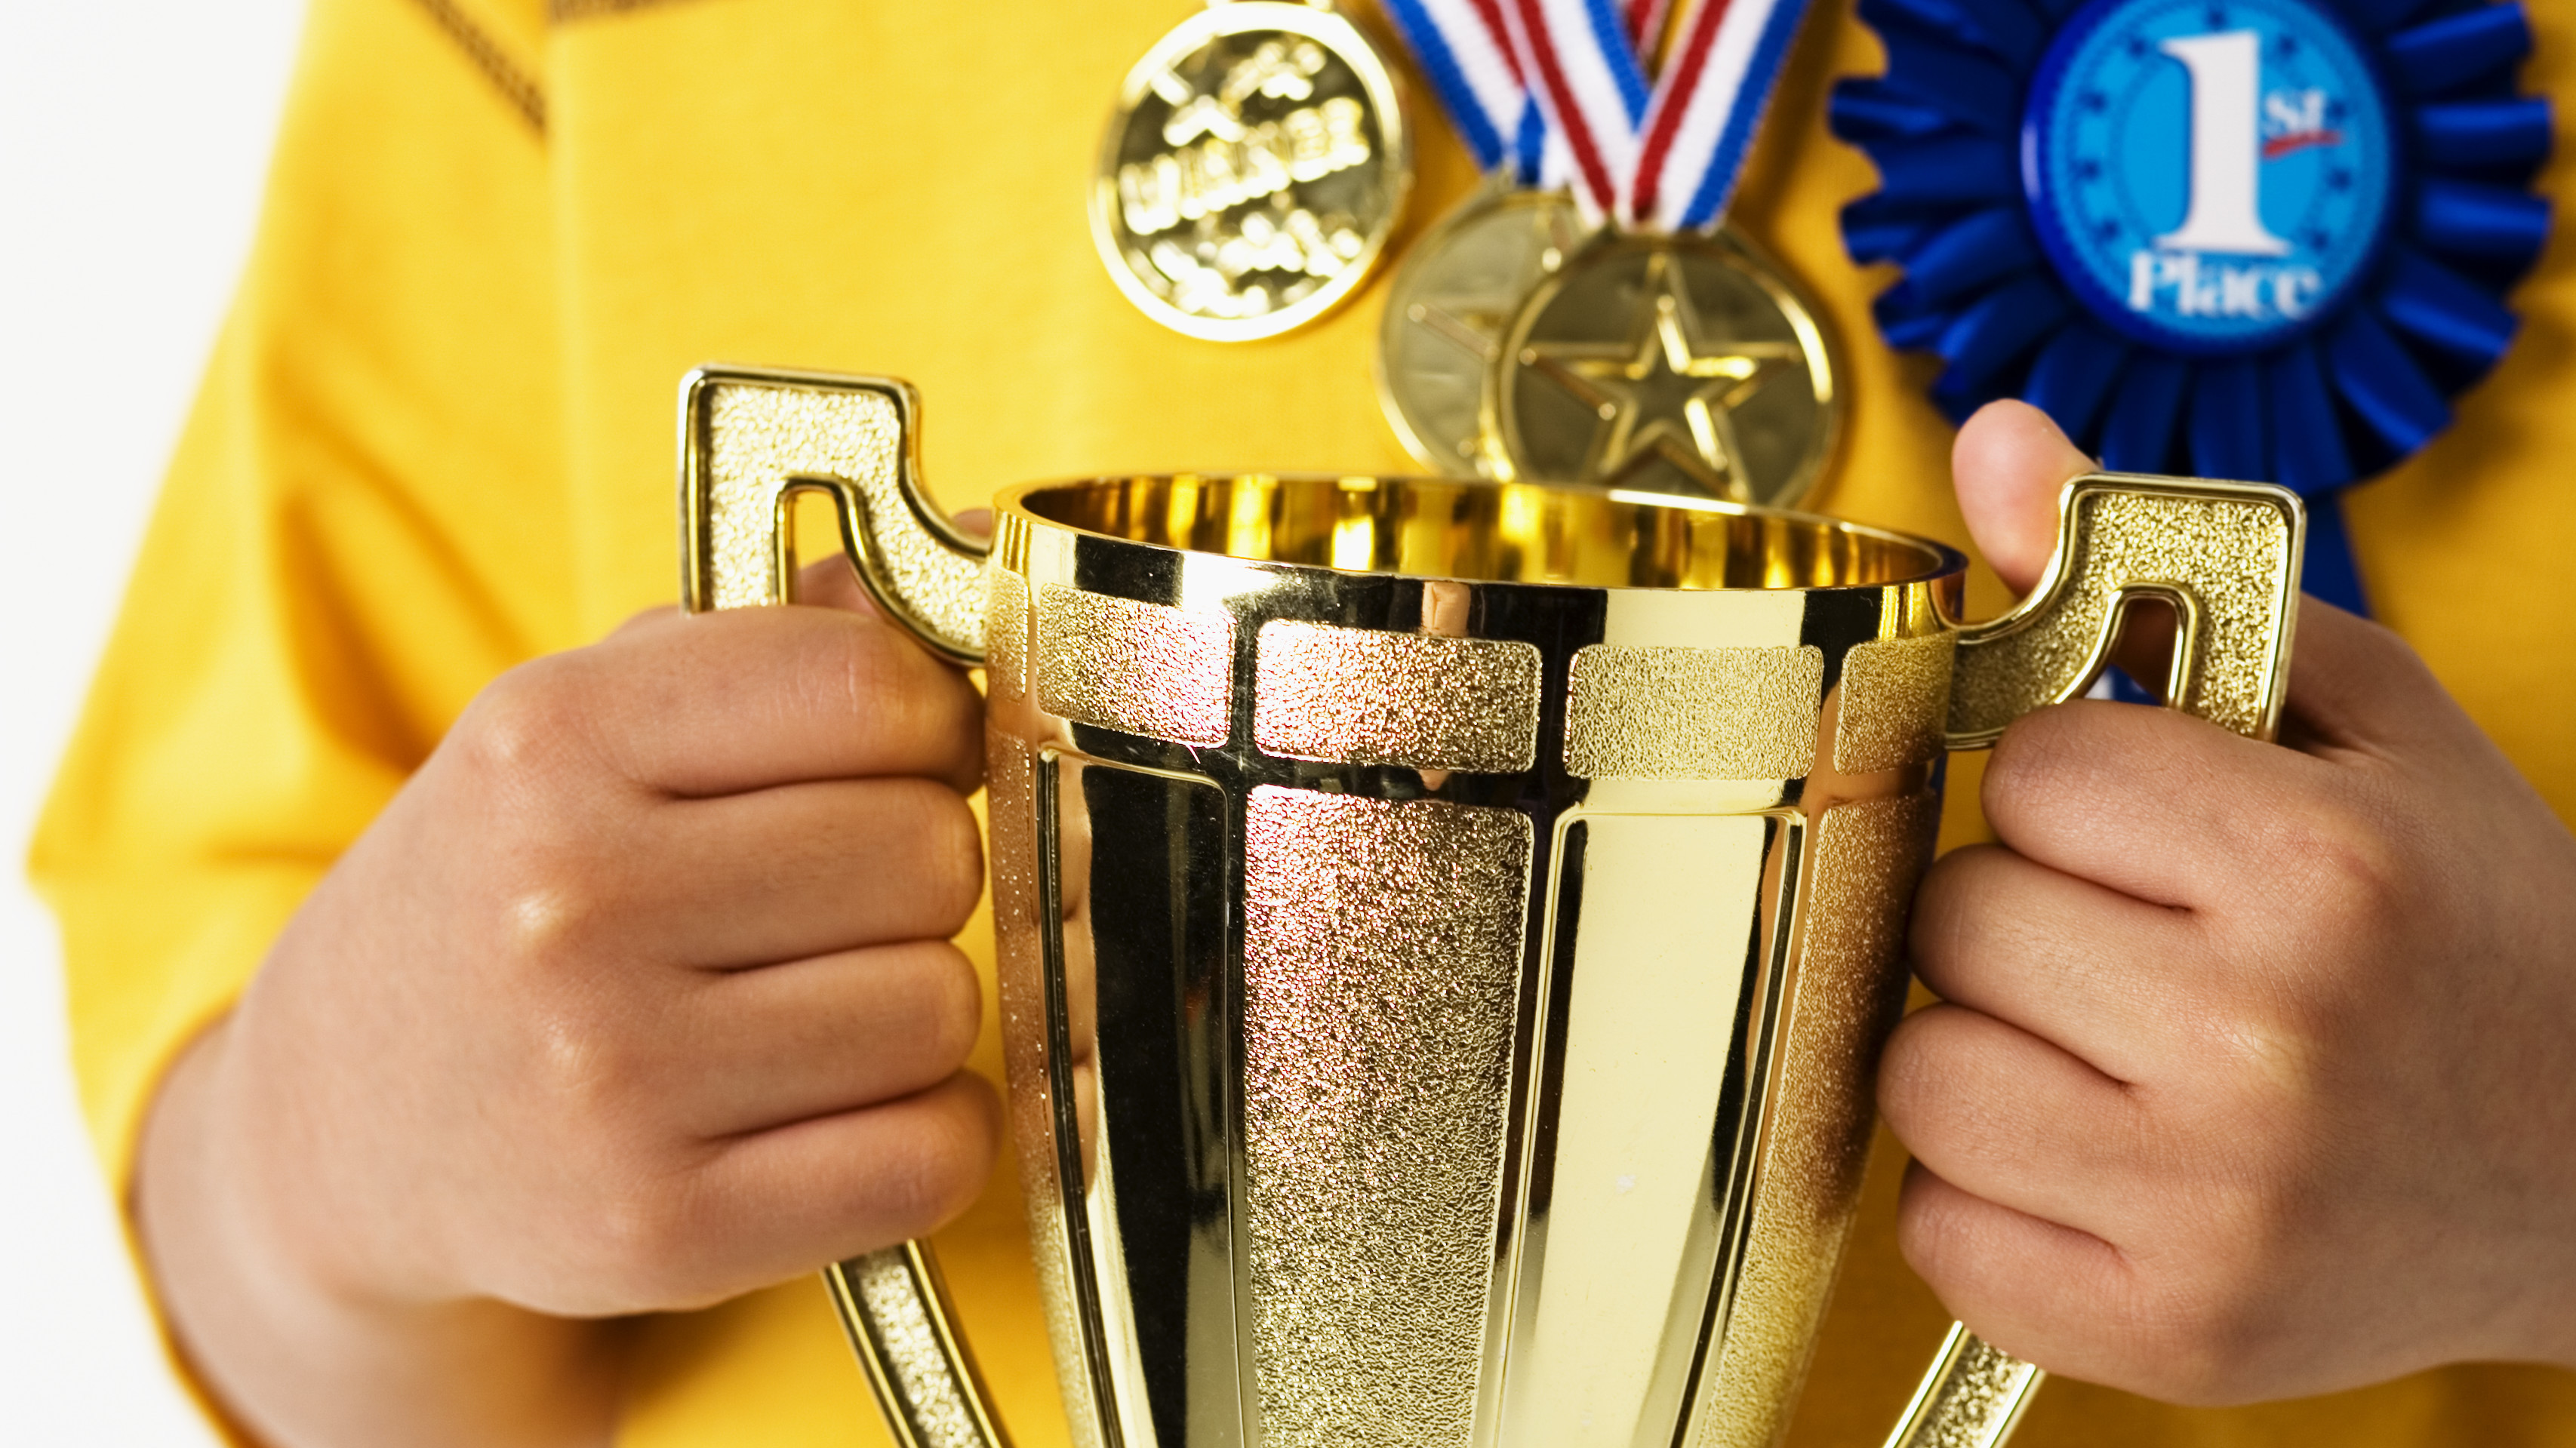 The Kids Have Spoken Discipline Helps Trophies For